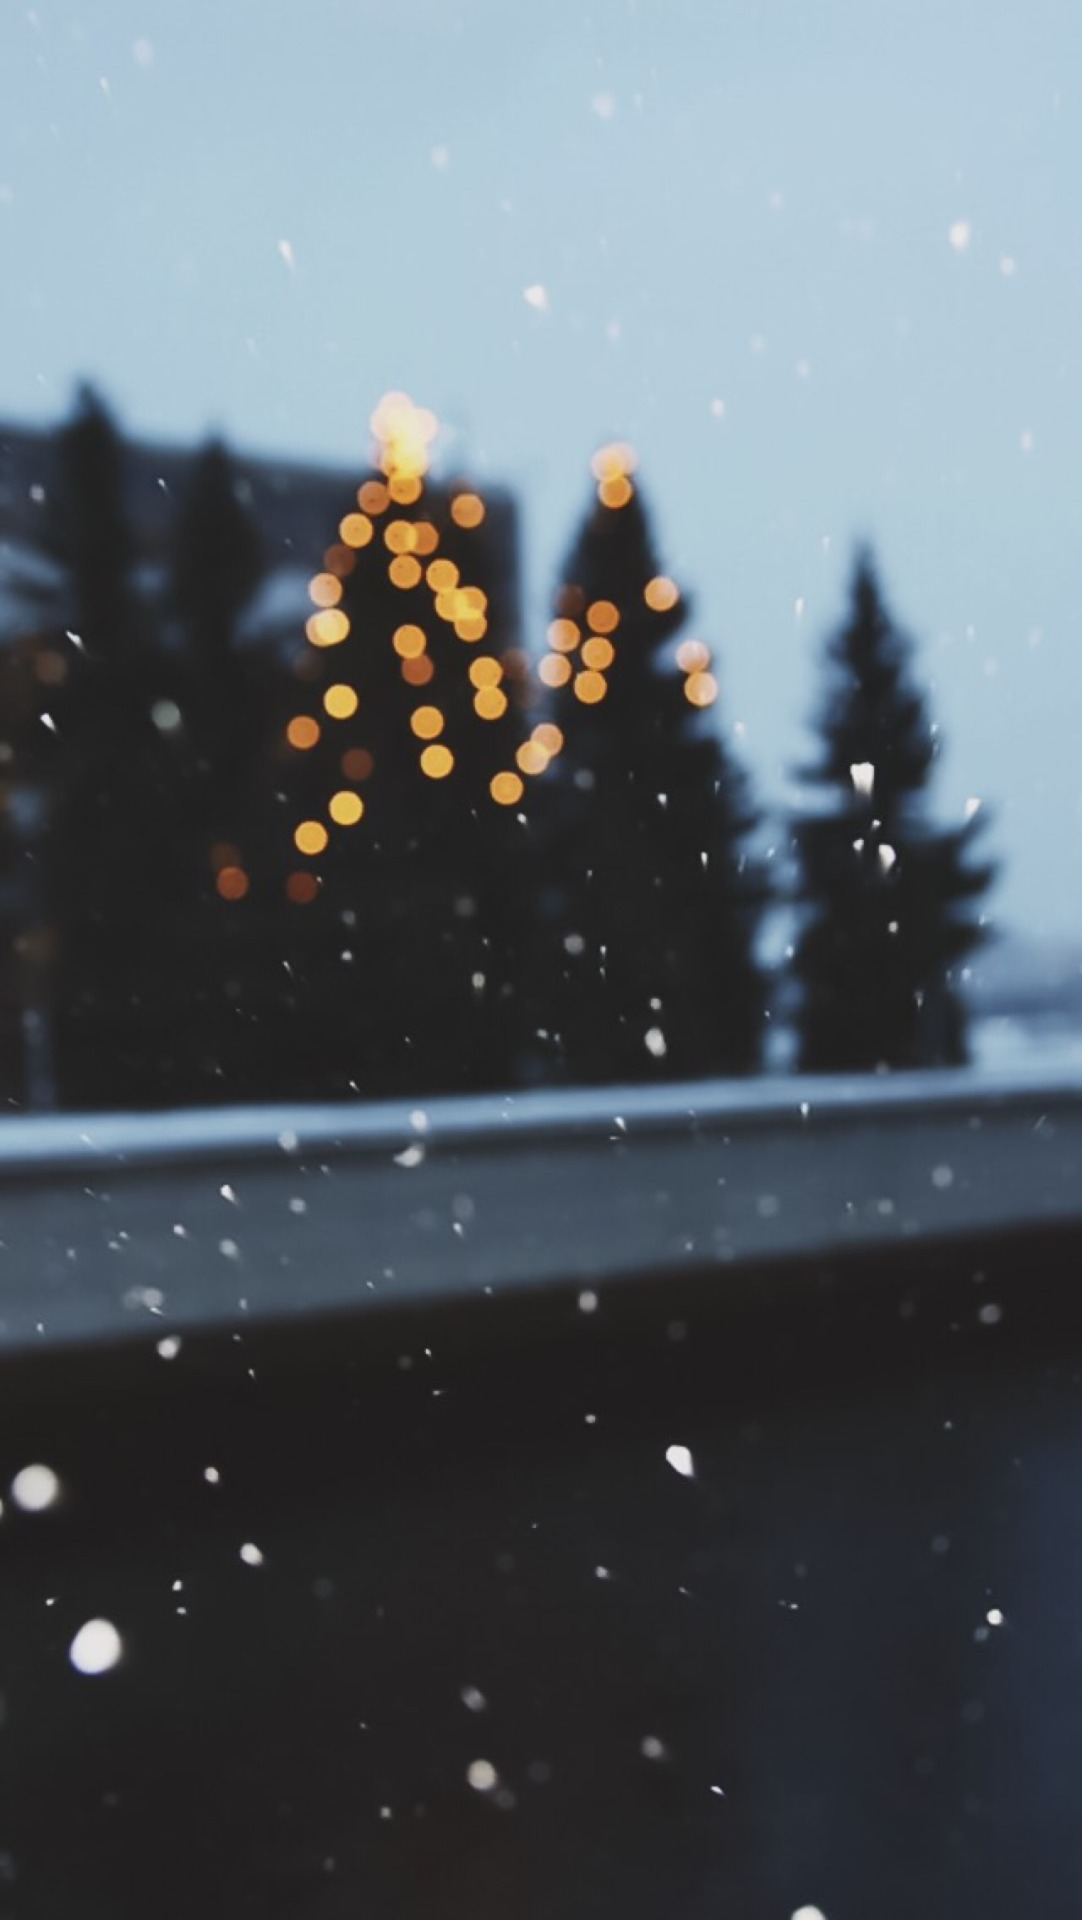 Download Winter Tumblr Wallpaper Hd Backgrounds Download